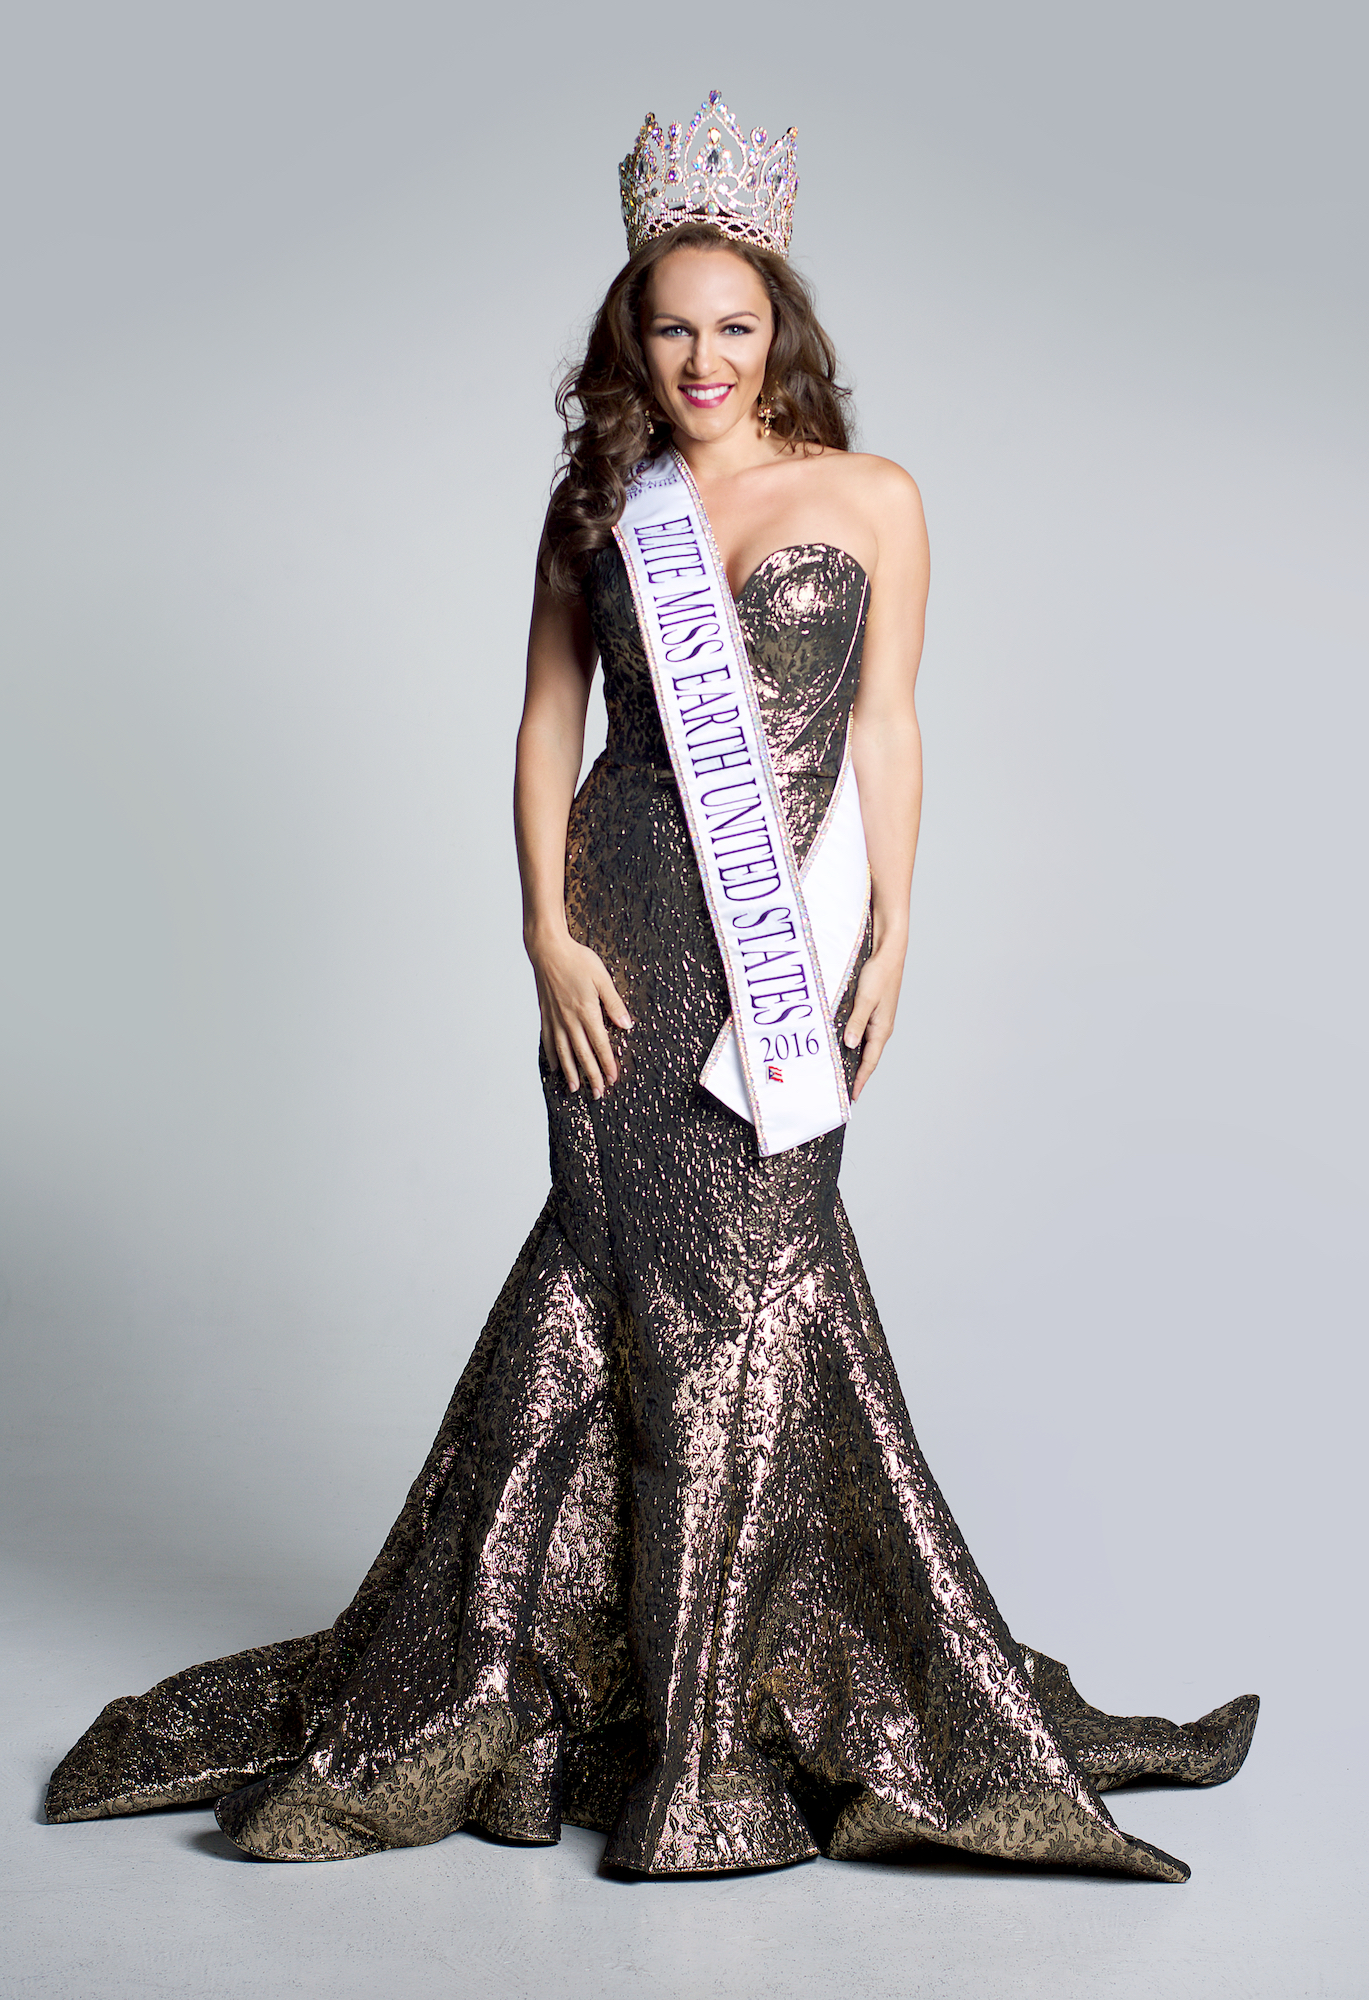 Elite Miss Earth United States Kristin Chucci